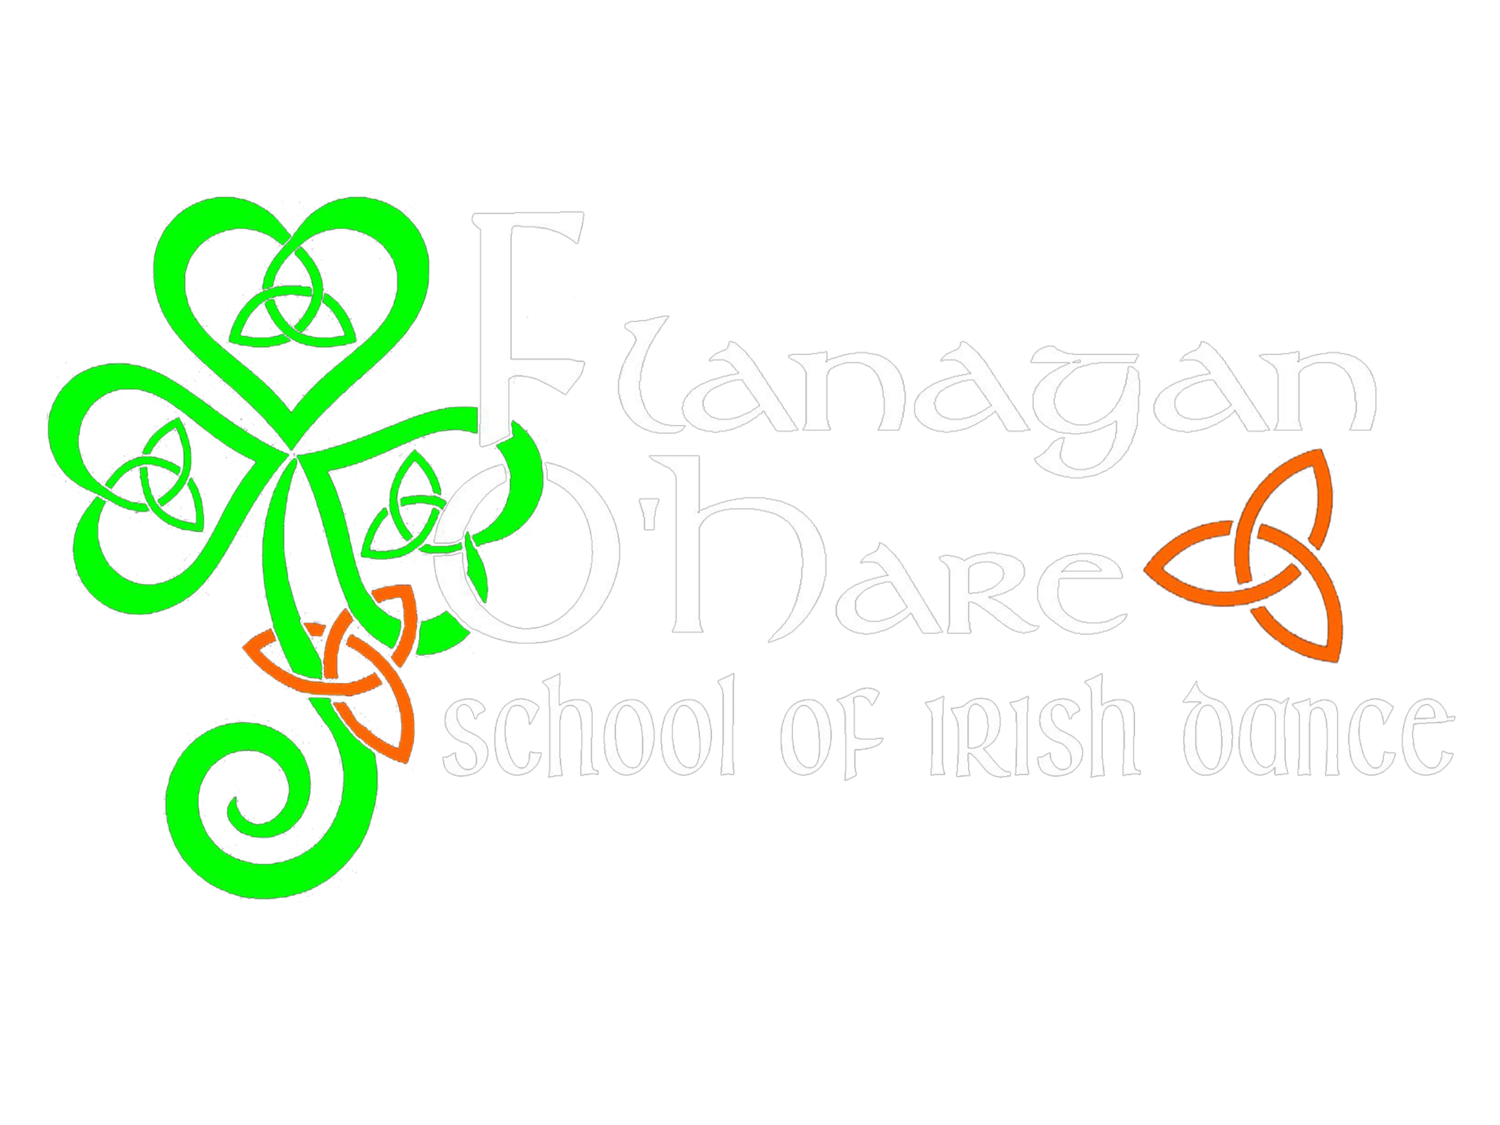 Flanagan O'Hare School of Irish Dance